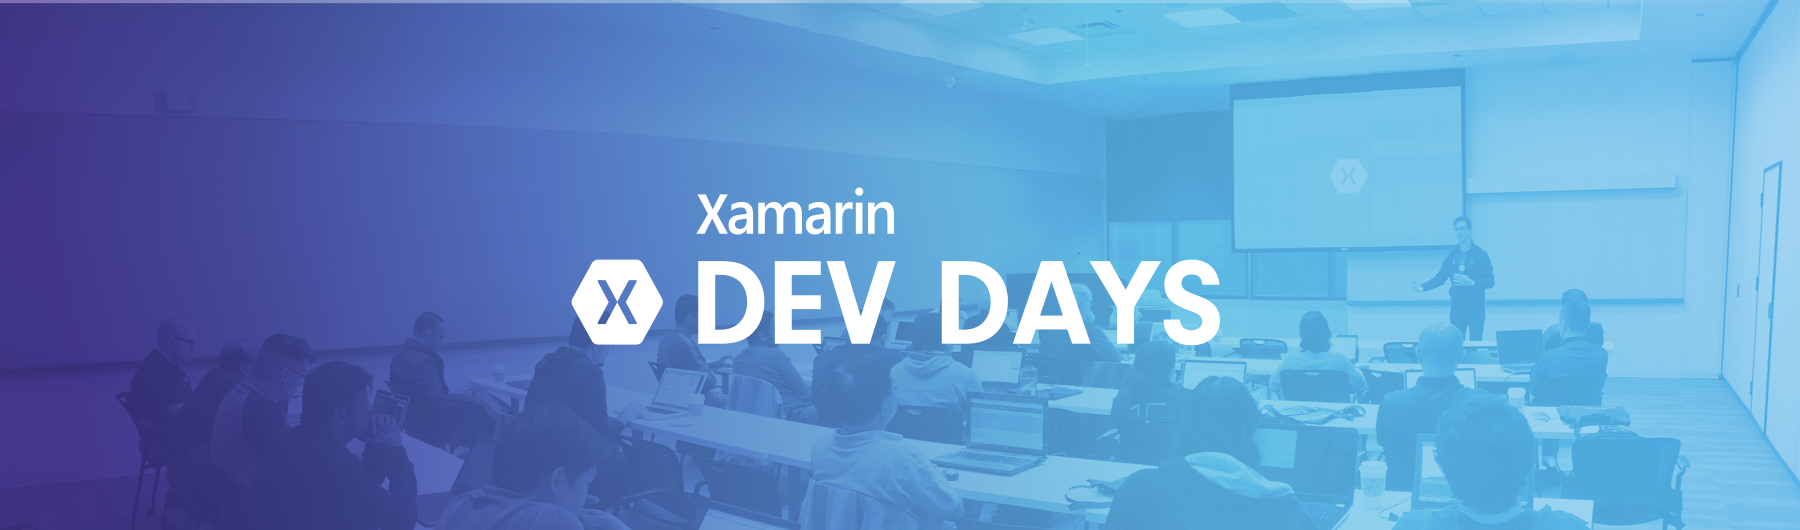 Xamarin Dev Days - Amsterdam